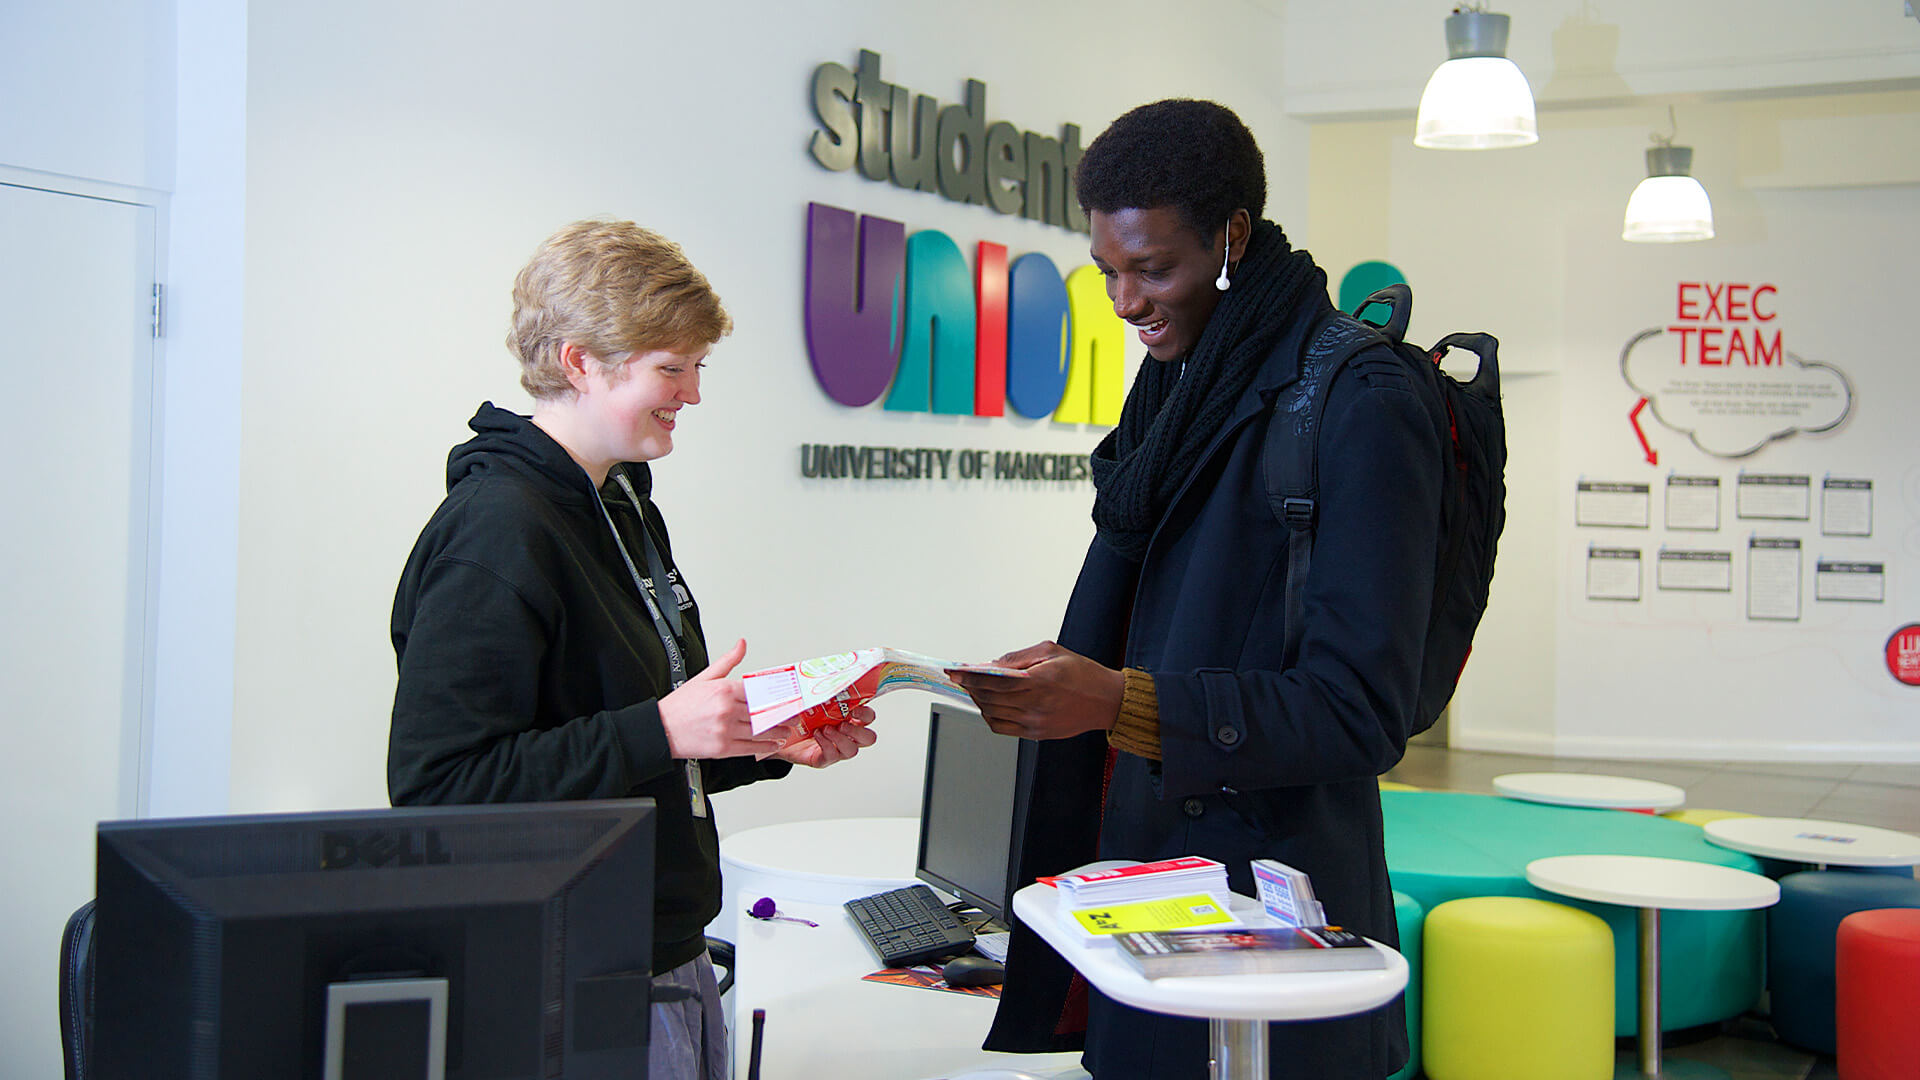 Placed at the heart of campus, the University of Manchester Students' Union is the hub of student life